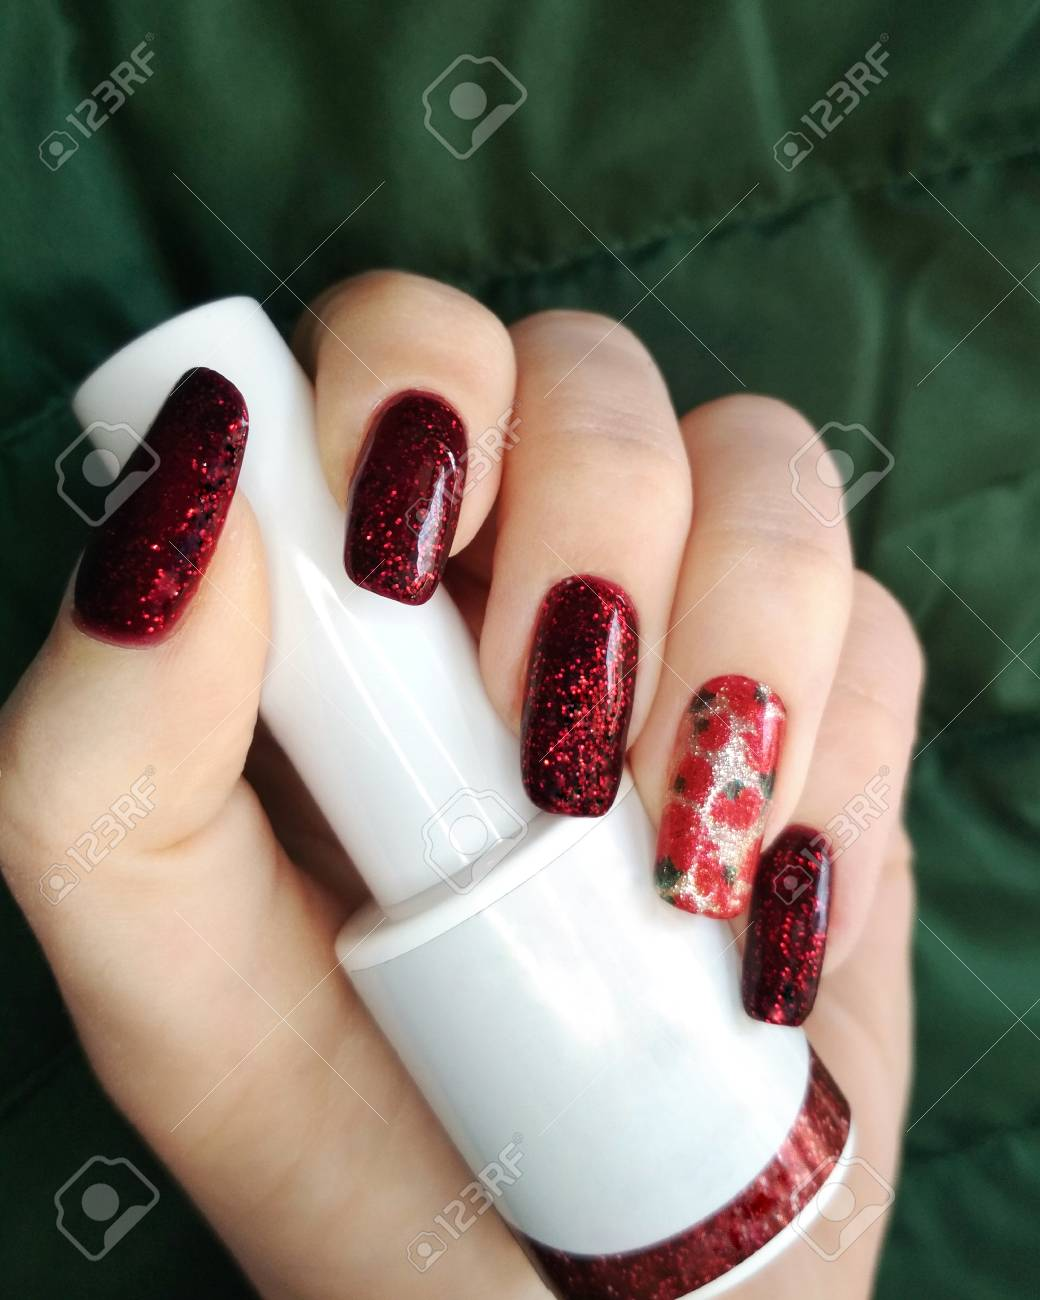 Woman hand finger black and red flower manicure gel nail polish..